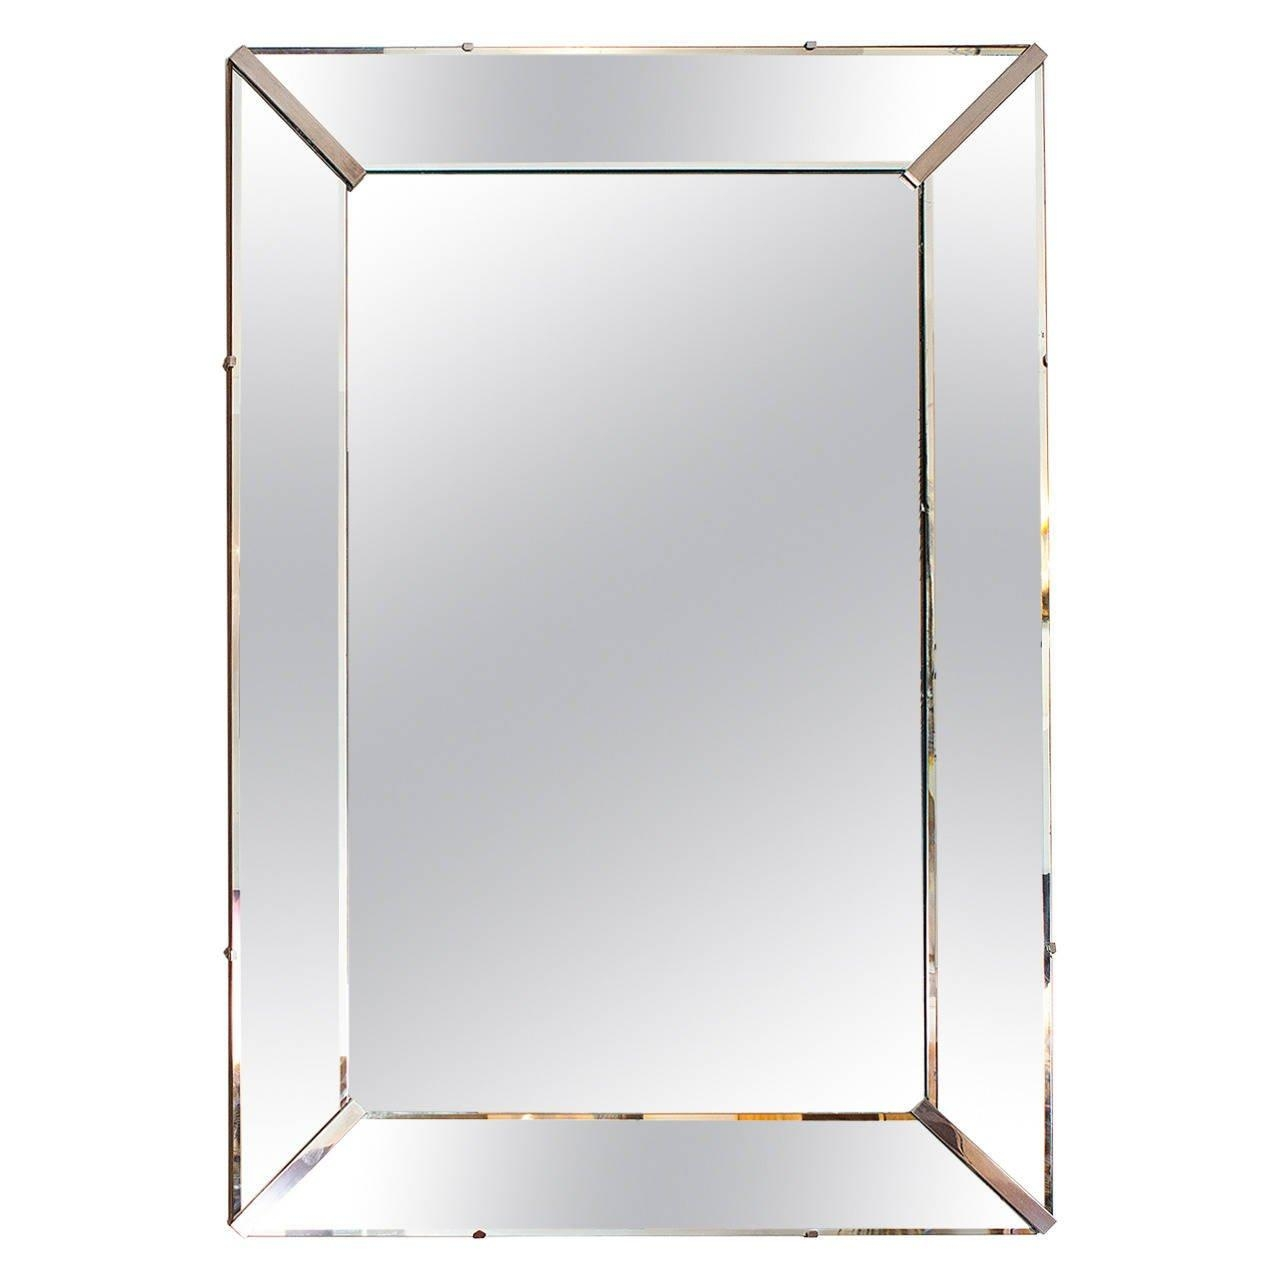 Elegant Art Deco Wall Mirror, France Circa 1940 At 1Stdibs Intended For Art Deco Wall Mirrors (View 2 of 20)